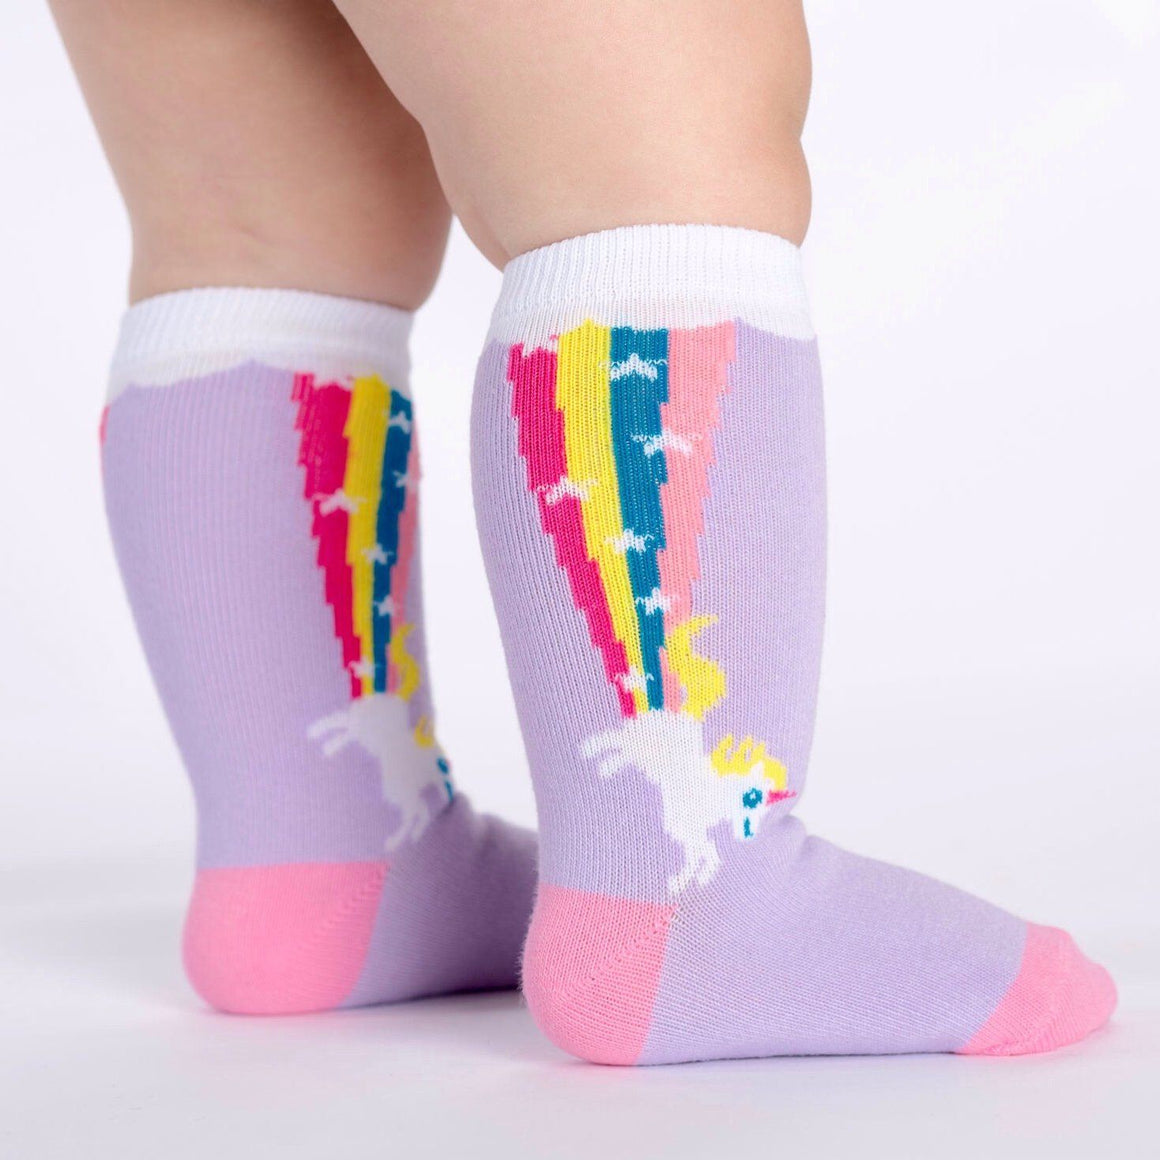 SOCKS - TODDLER KNEE RAINBOW BLAST, SOCKS, SOCK IT TO ME - Bon + Co. Party Studio